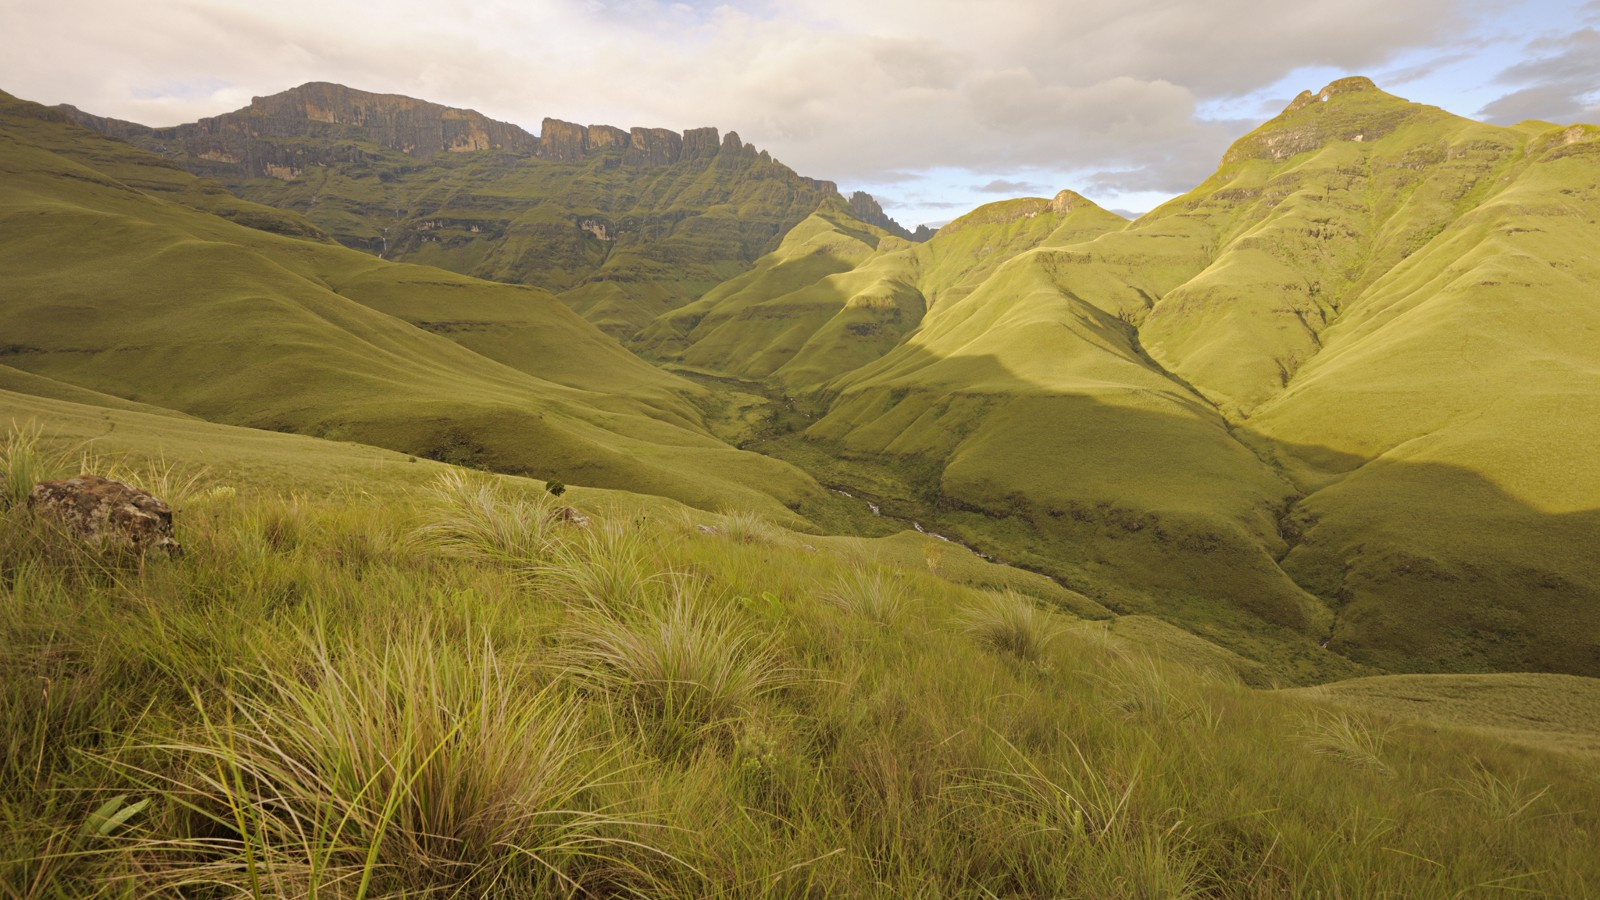 Dawn light on Drakensberg mountain peaks, South Africa